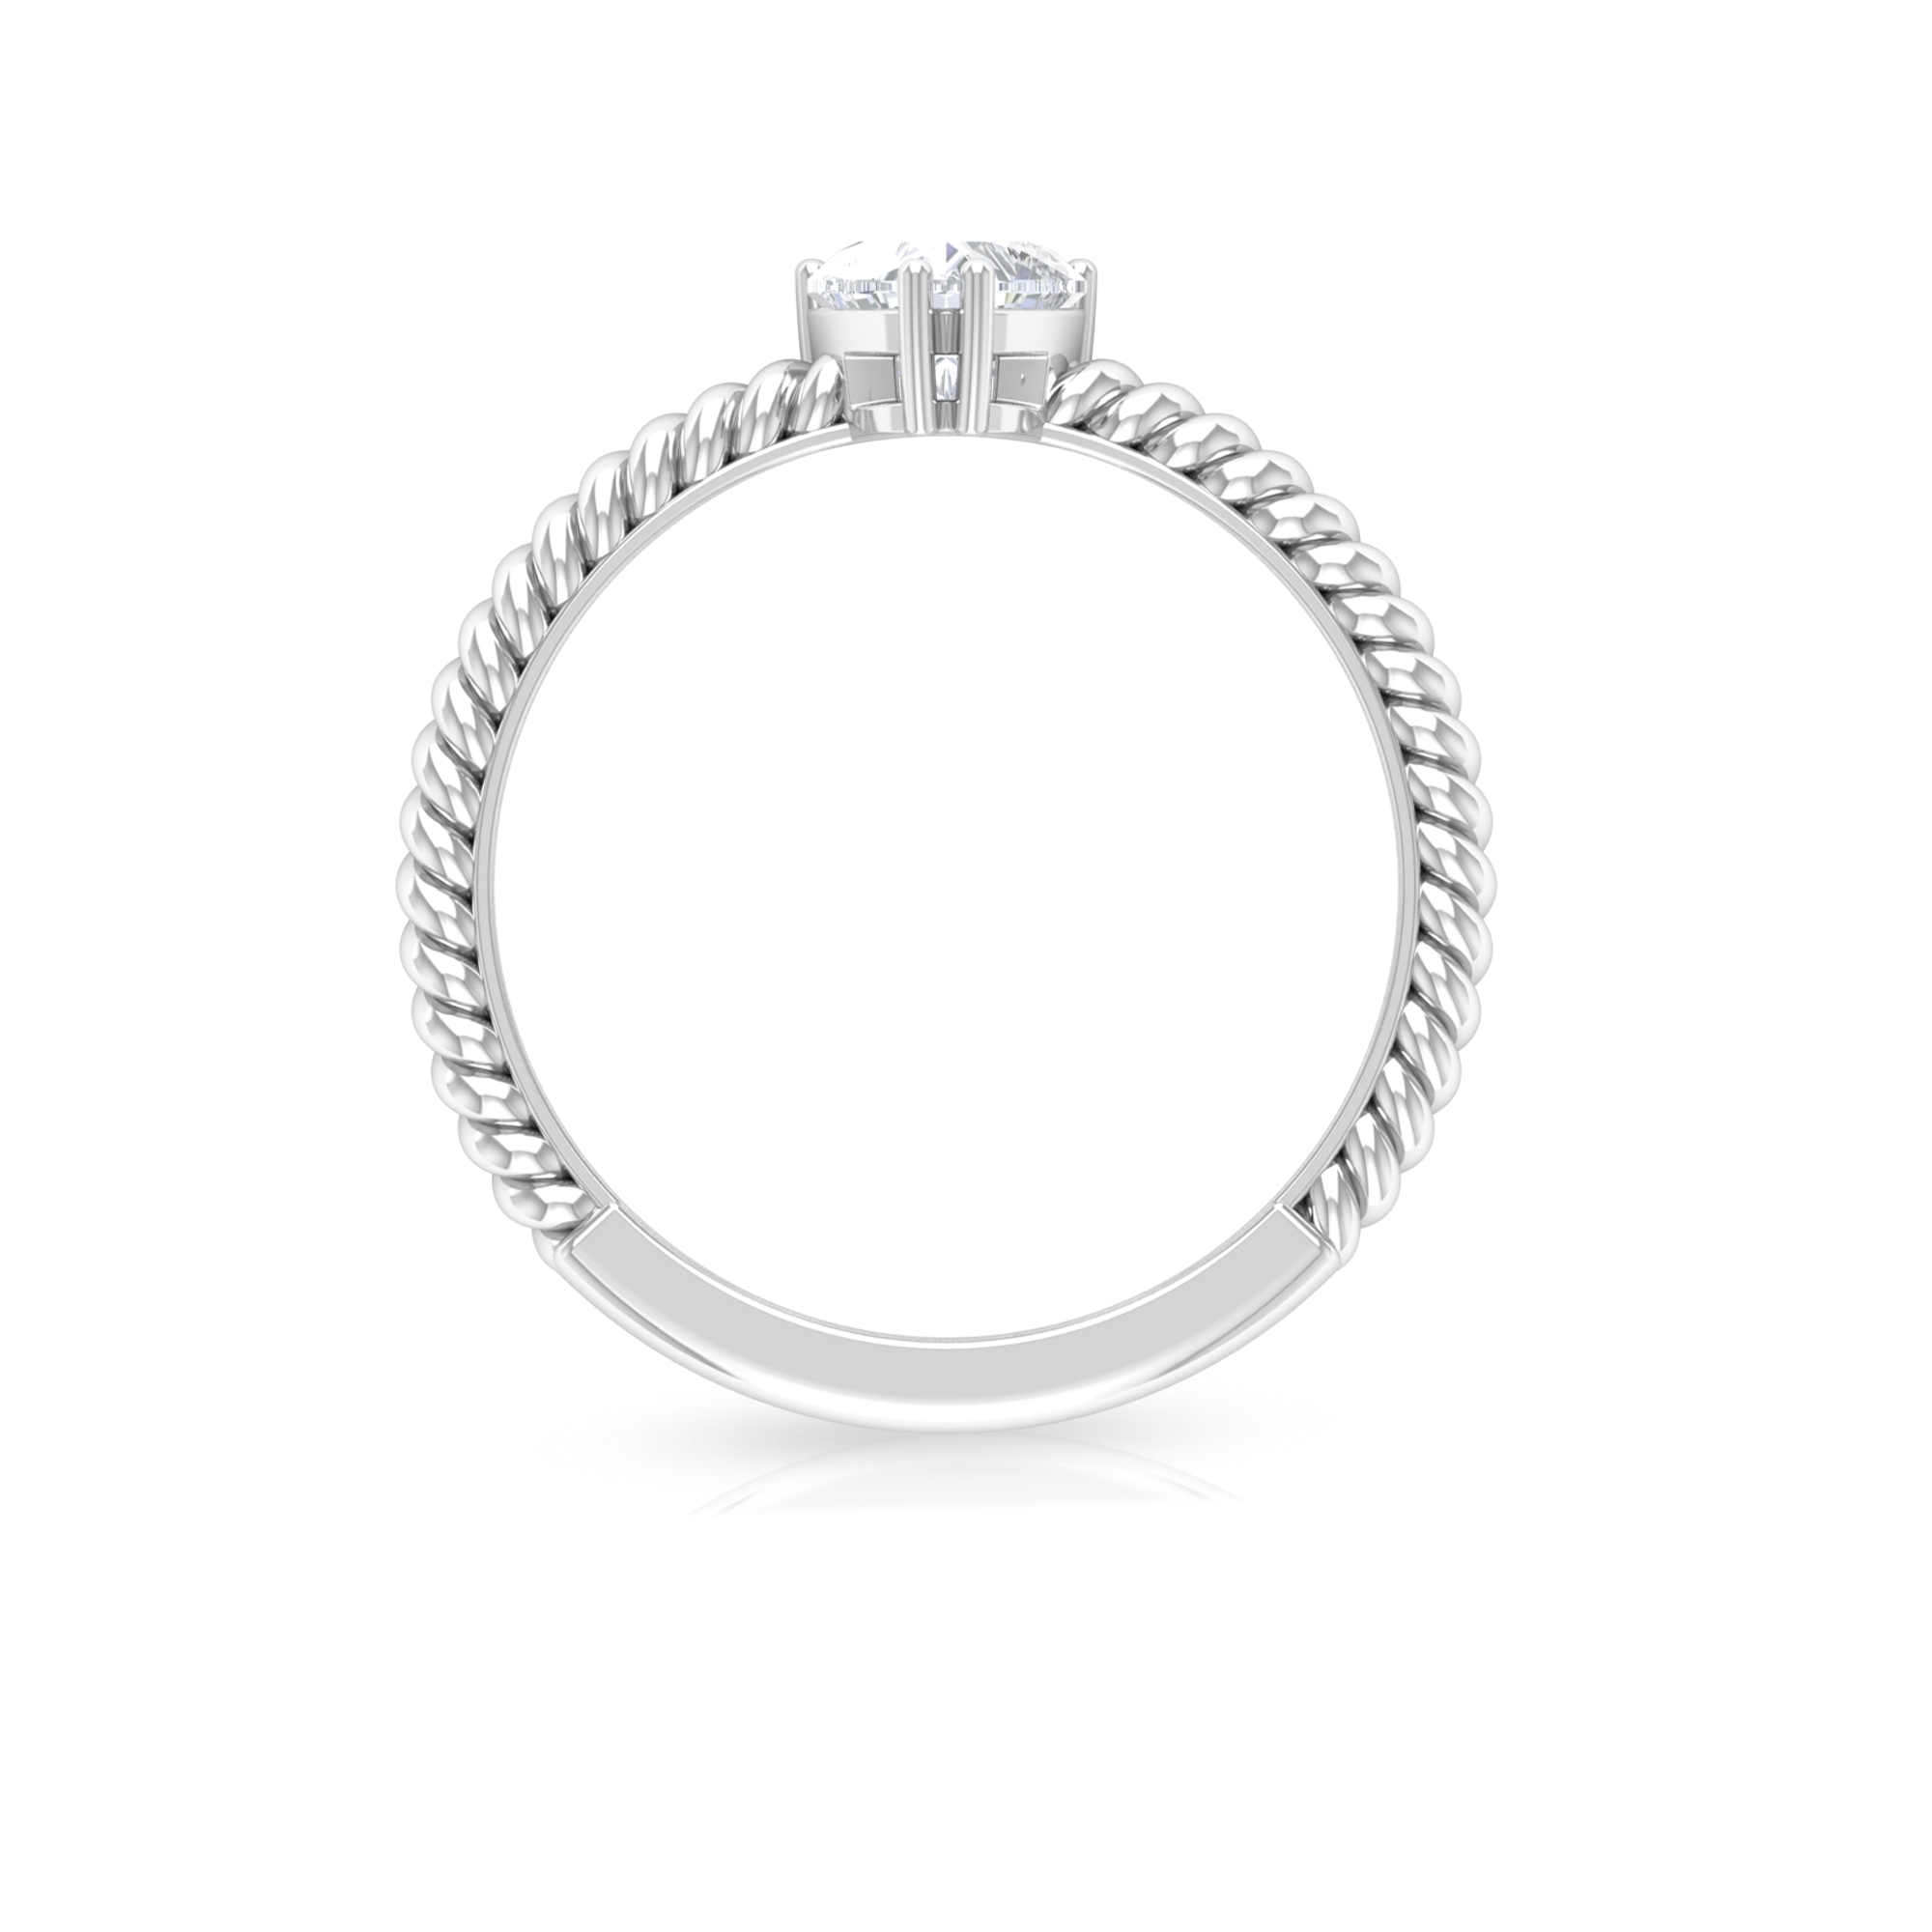 5.40 MM Heart Shape Diamond Solitaire Ring in Double Prong Setting with Twisted Rope Details